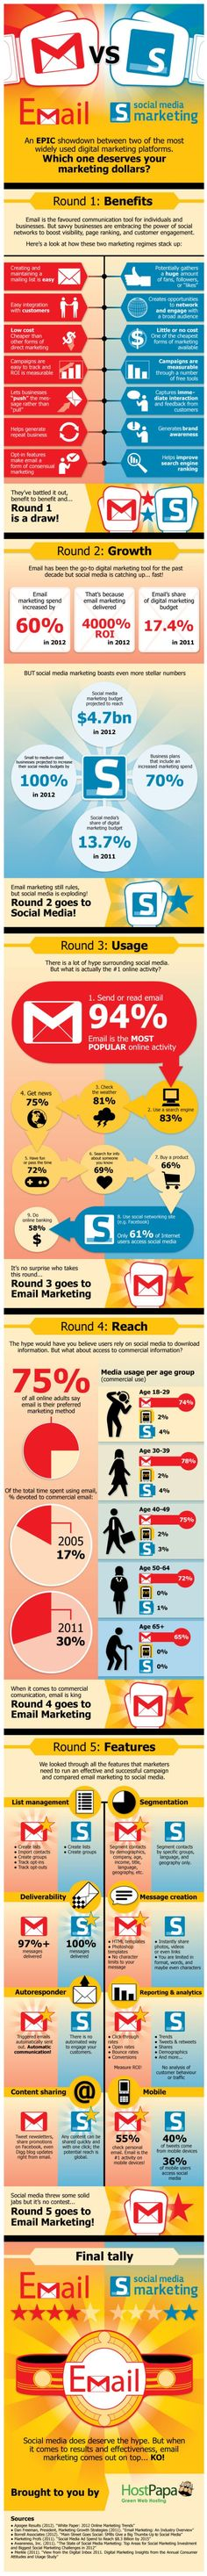 Who wins the marketing war between email versus social media?. http://www.serverpoint.com/